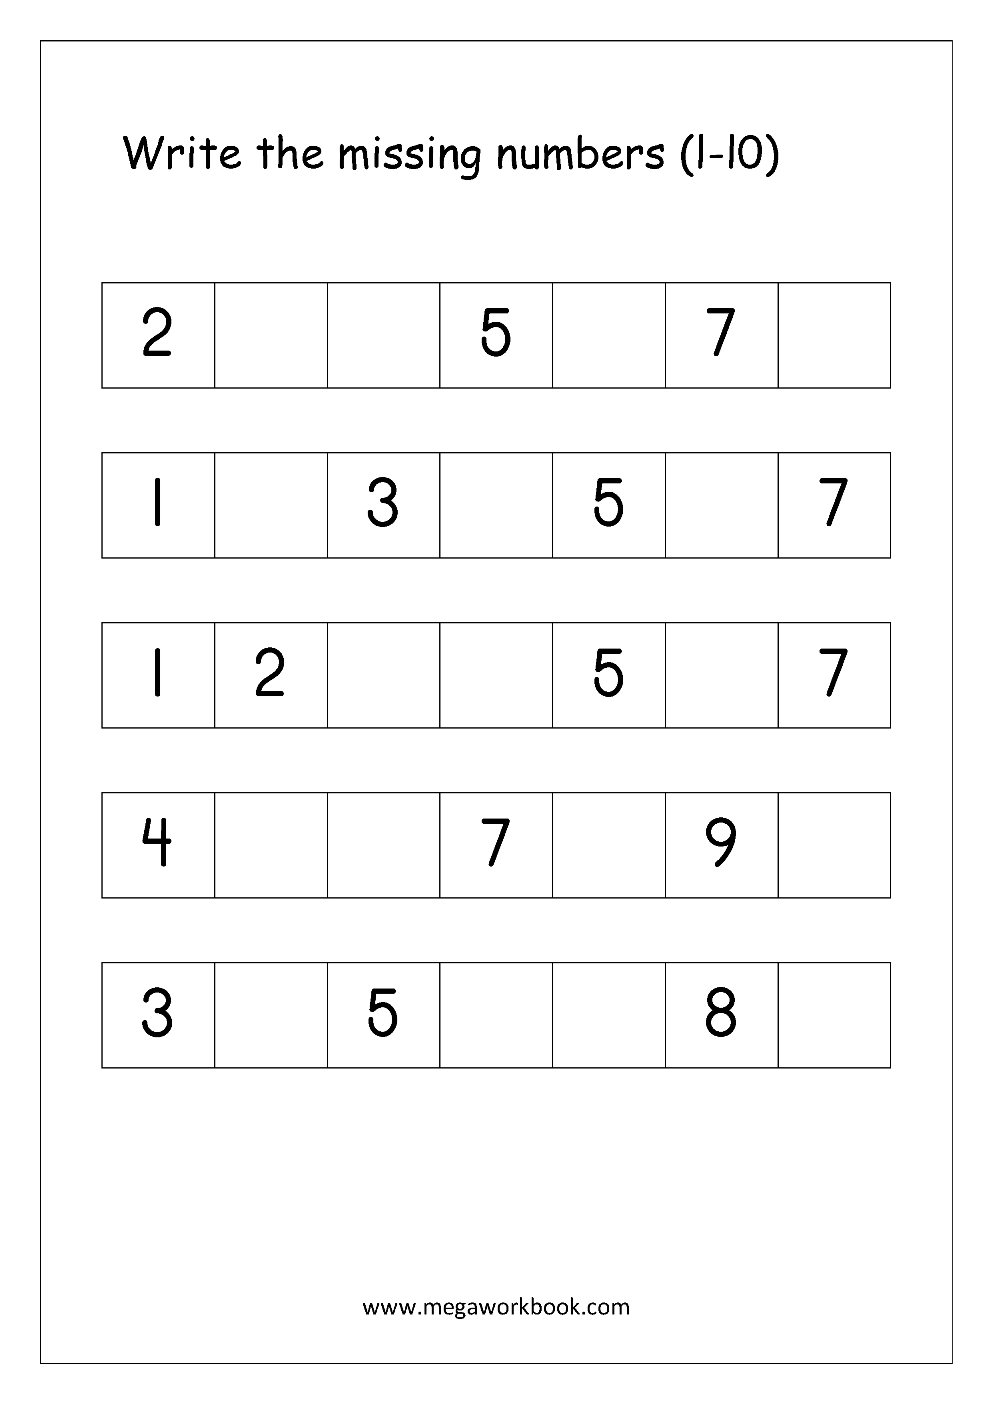 Ordering Numbers Worksheets, Missing Numbers, What Comes Before And - Free Printable Missing Number Worksheets